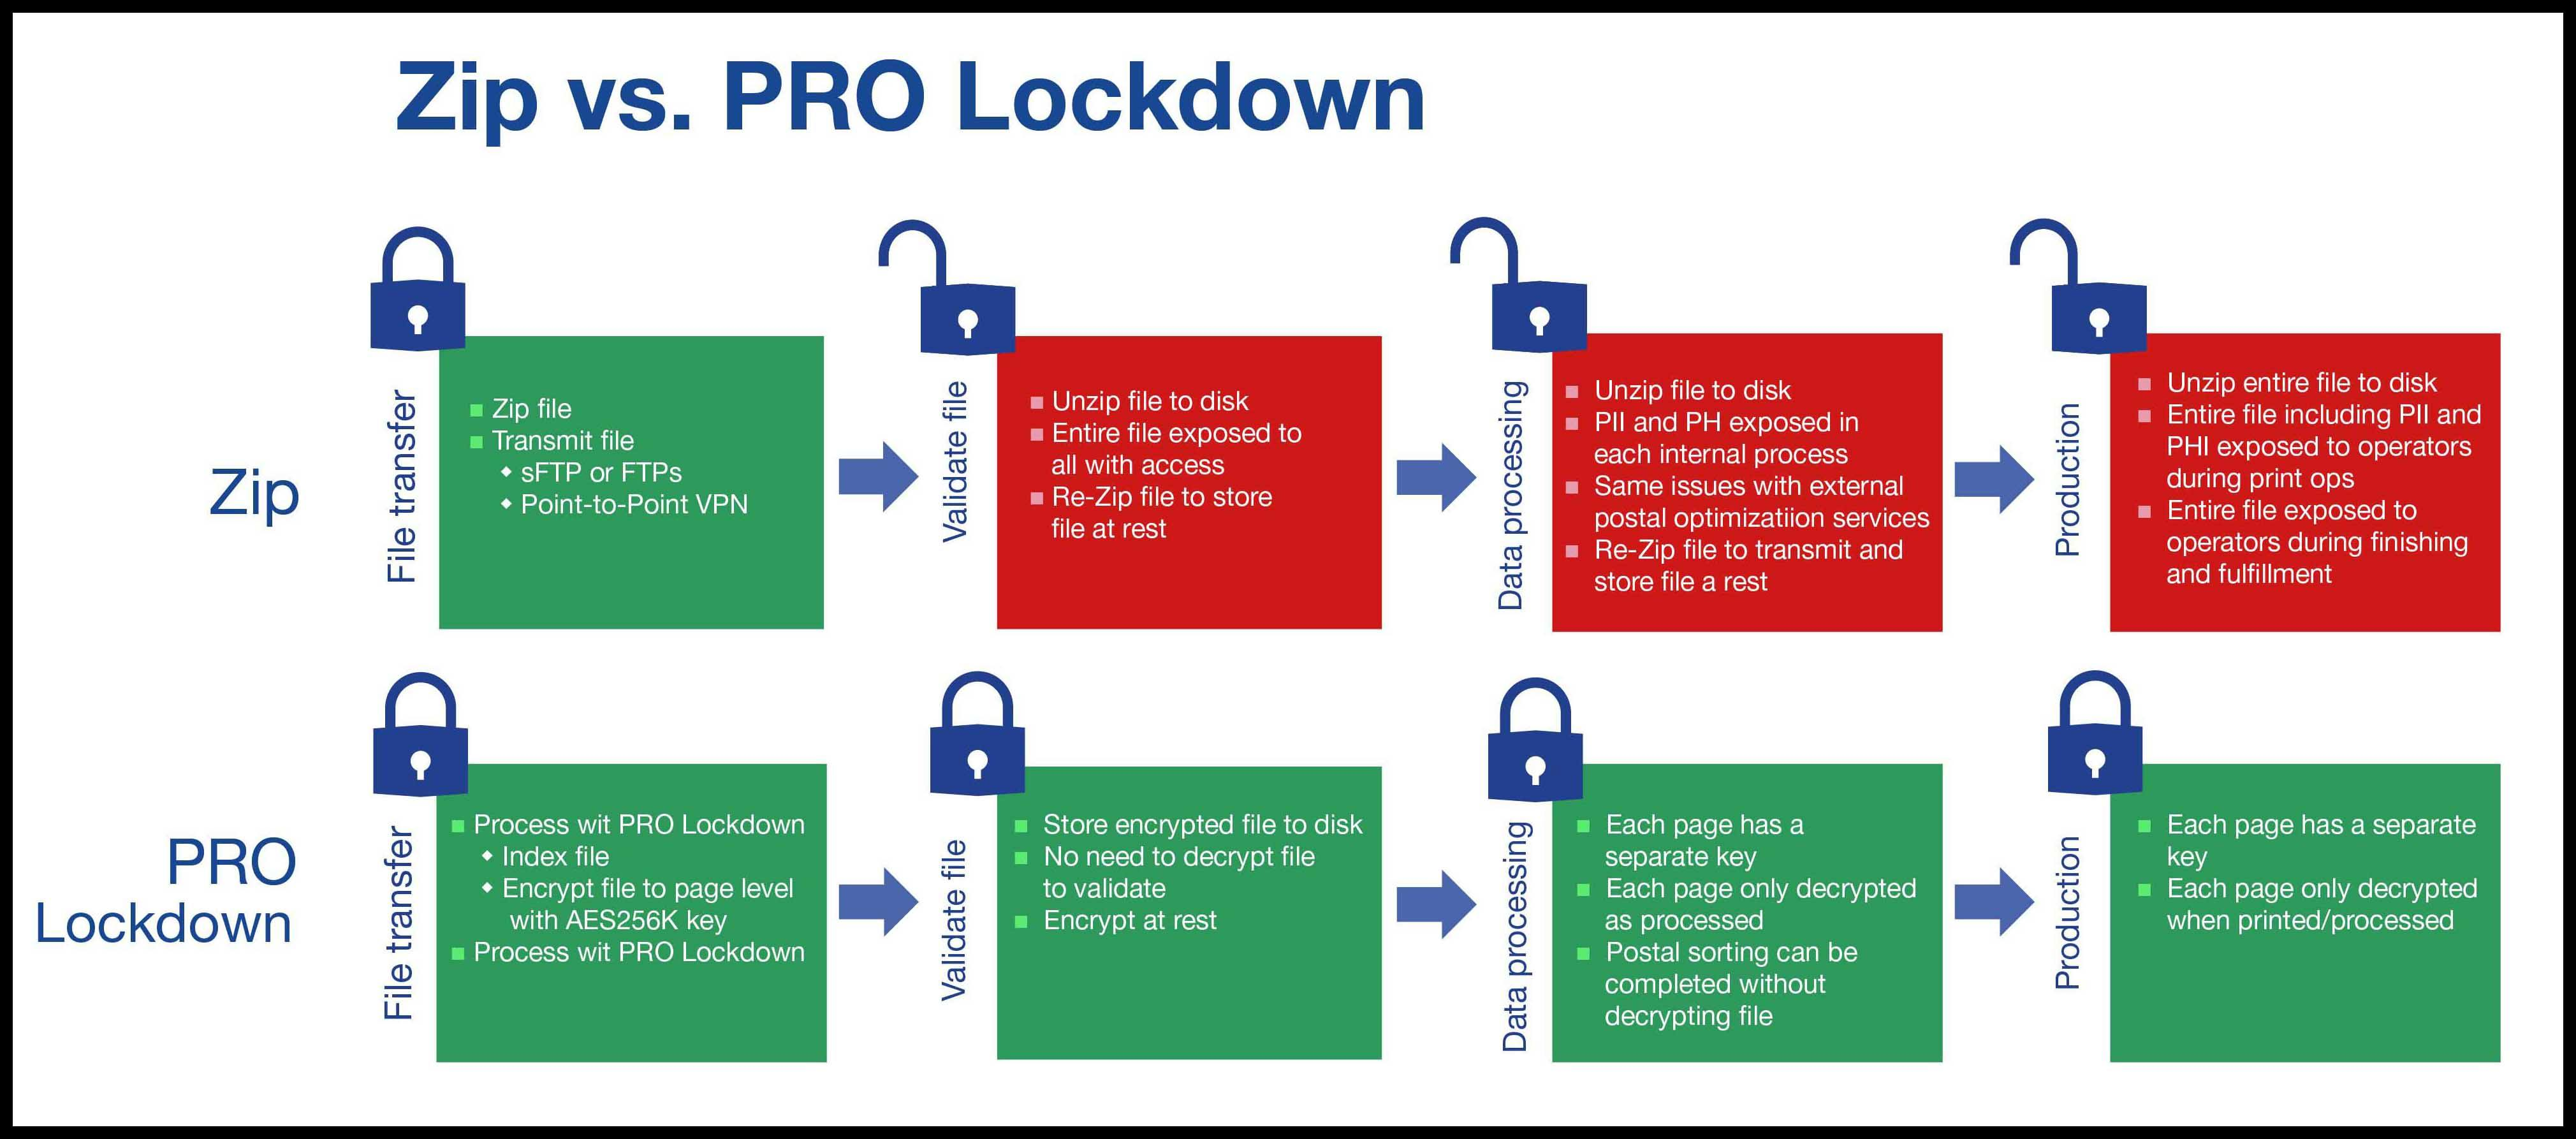 chart comparing Zip and PRO Lockdown